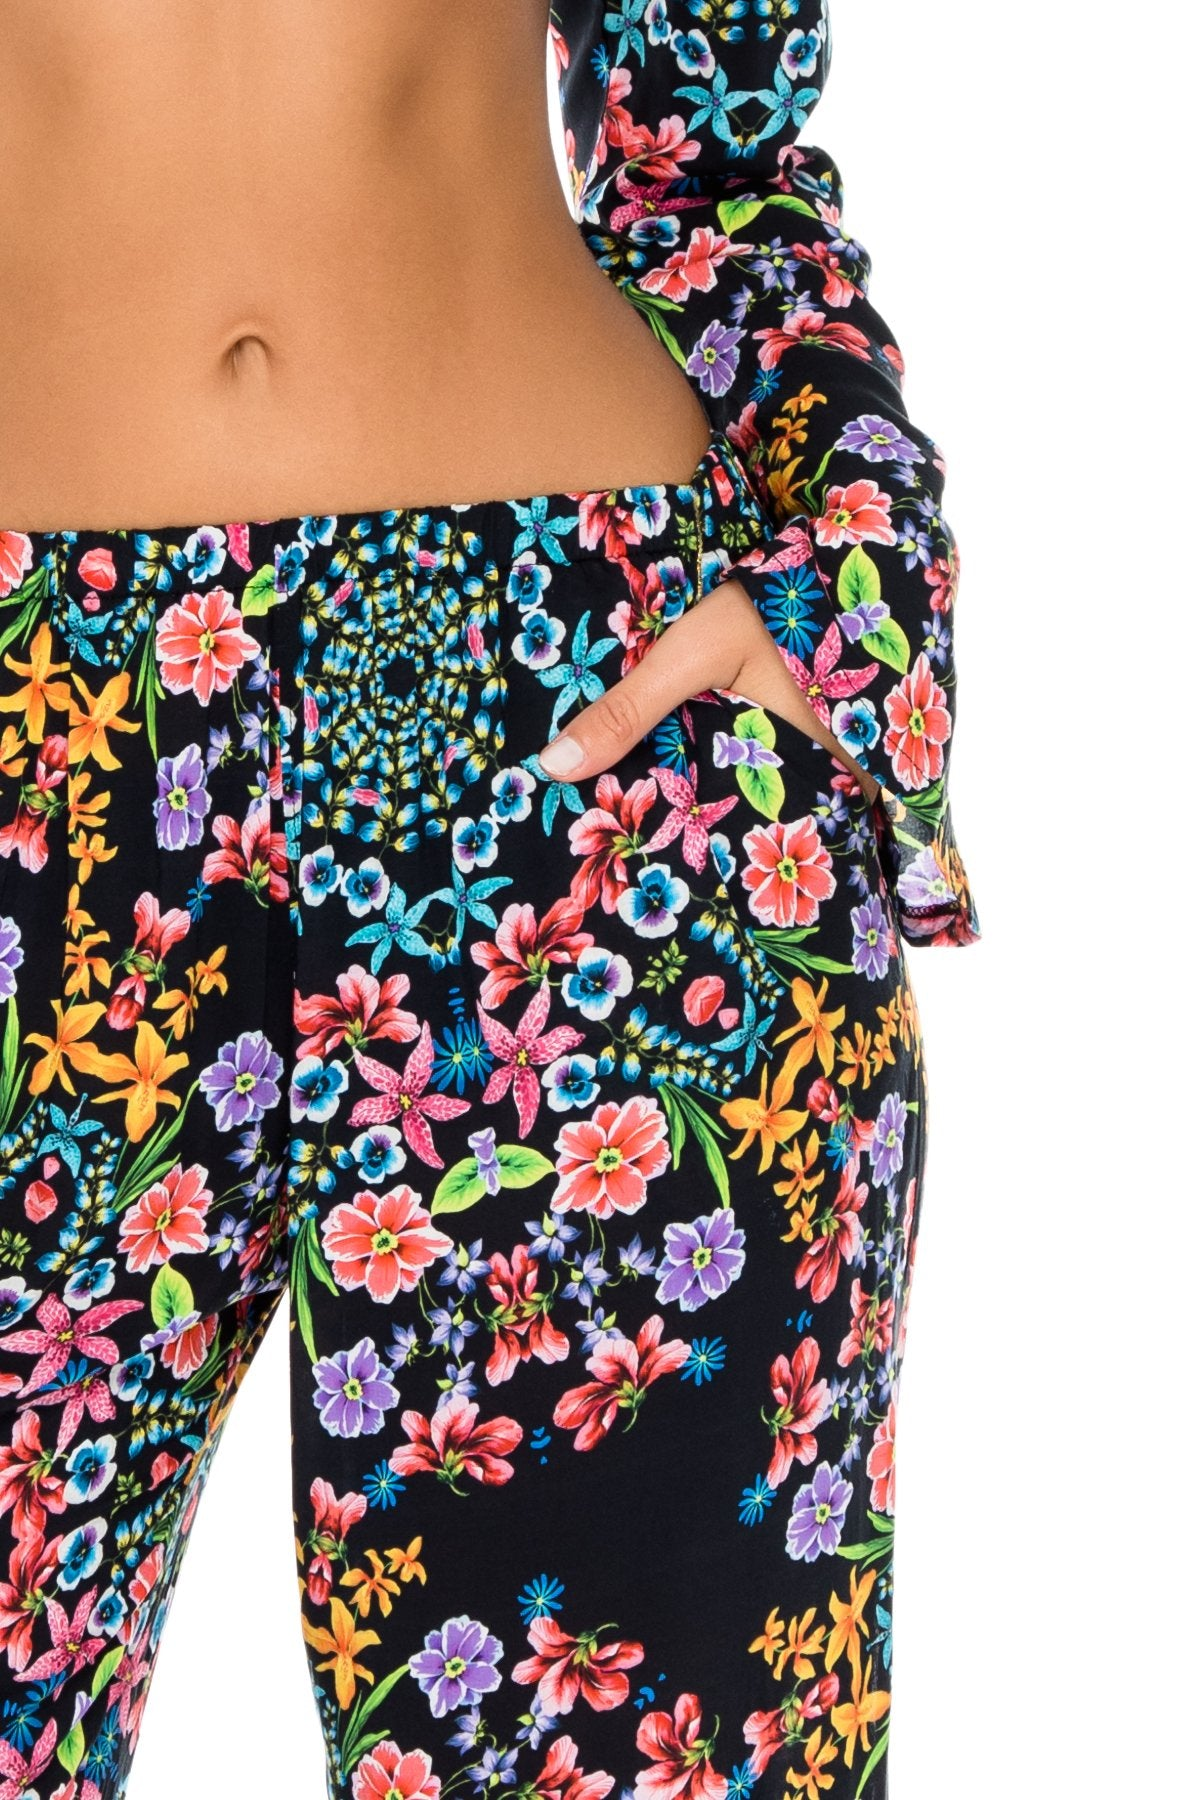 NOCHES DE SEVILLA - Tropicana Shoulder Top & Split Side Wide Leg Pant • Multicolor